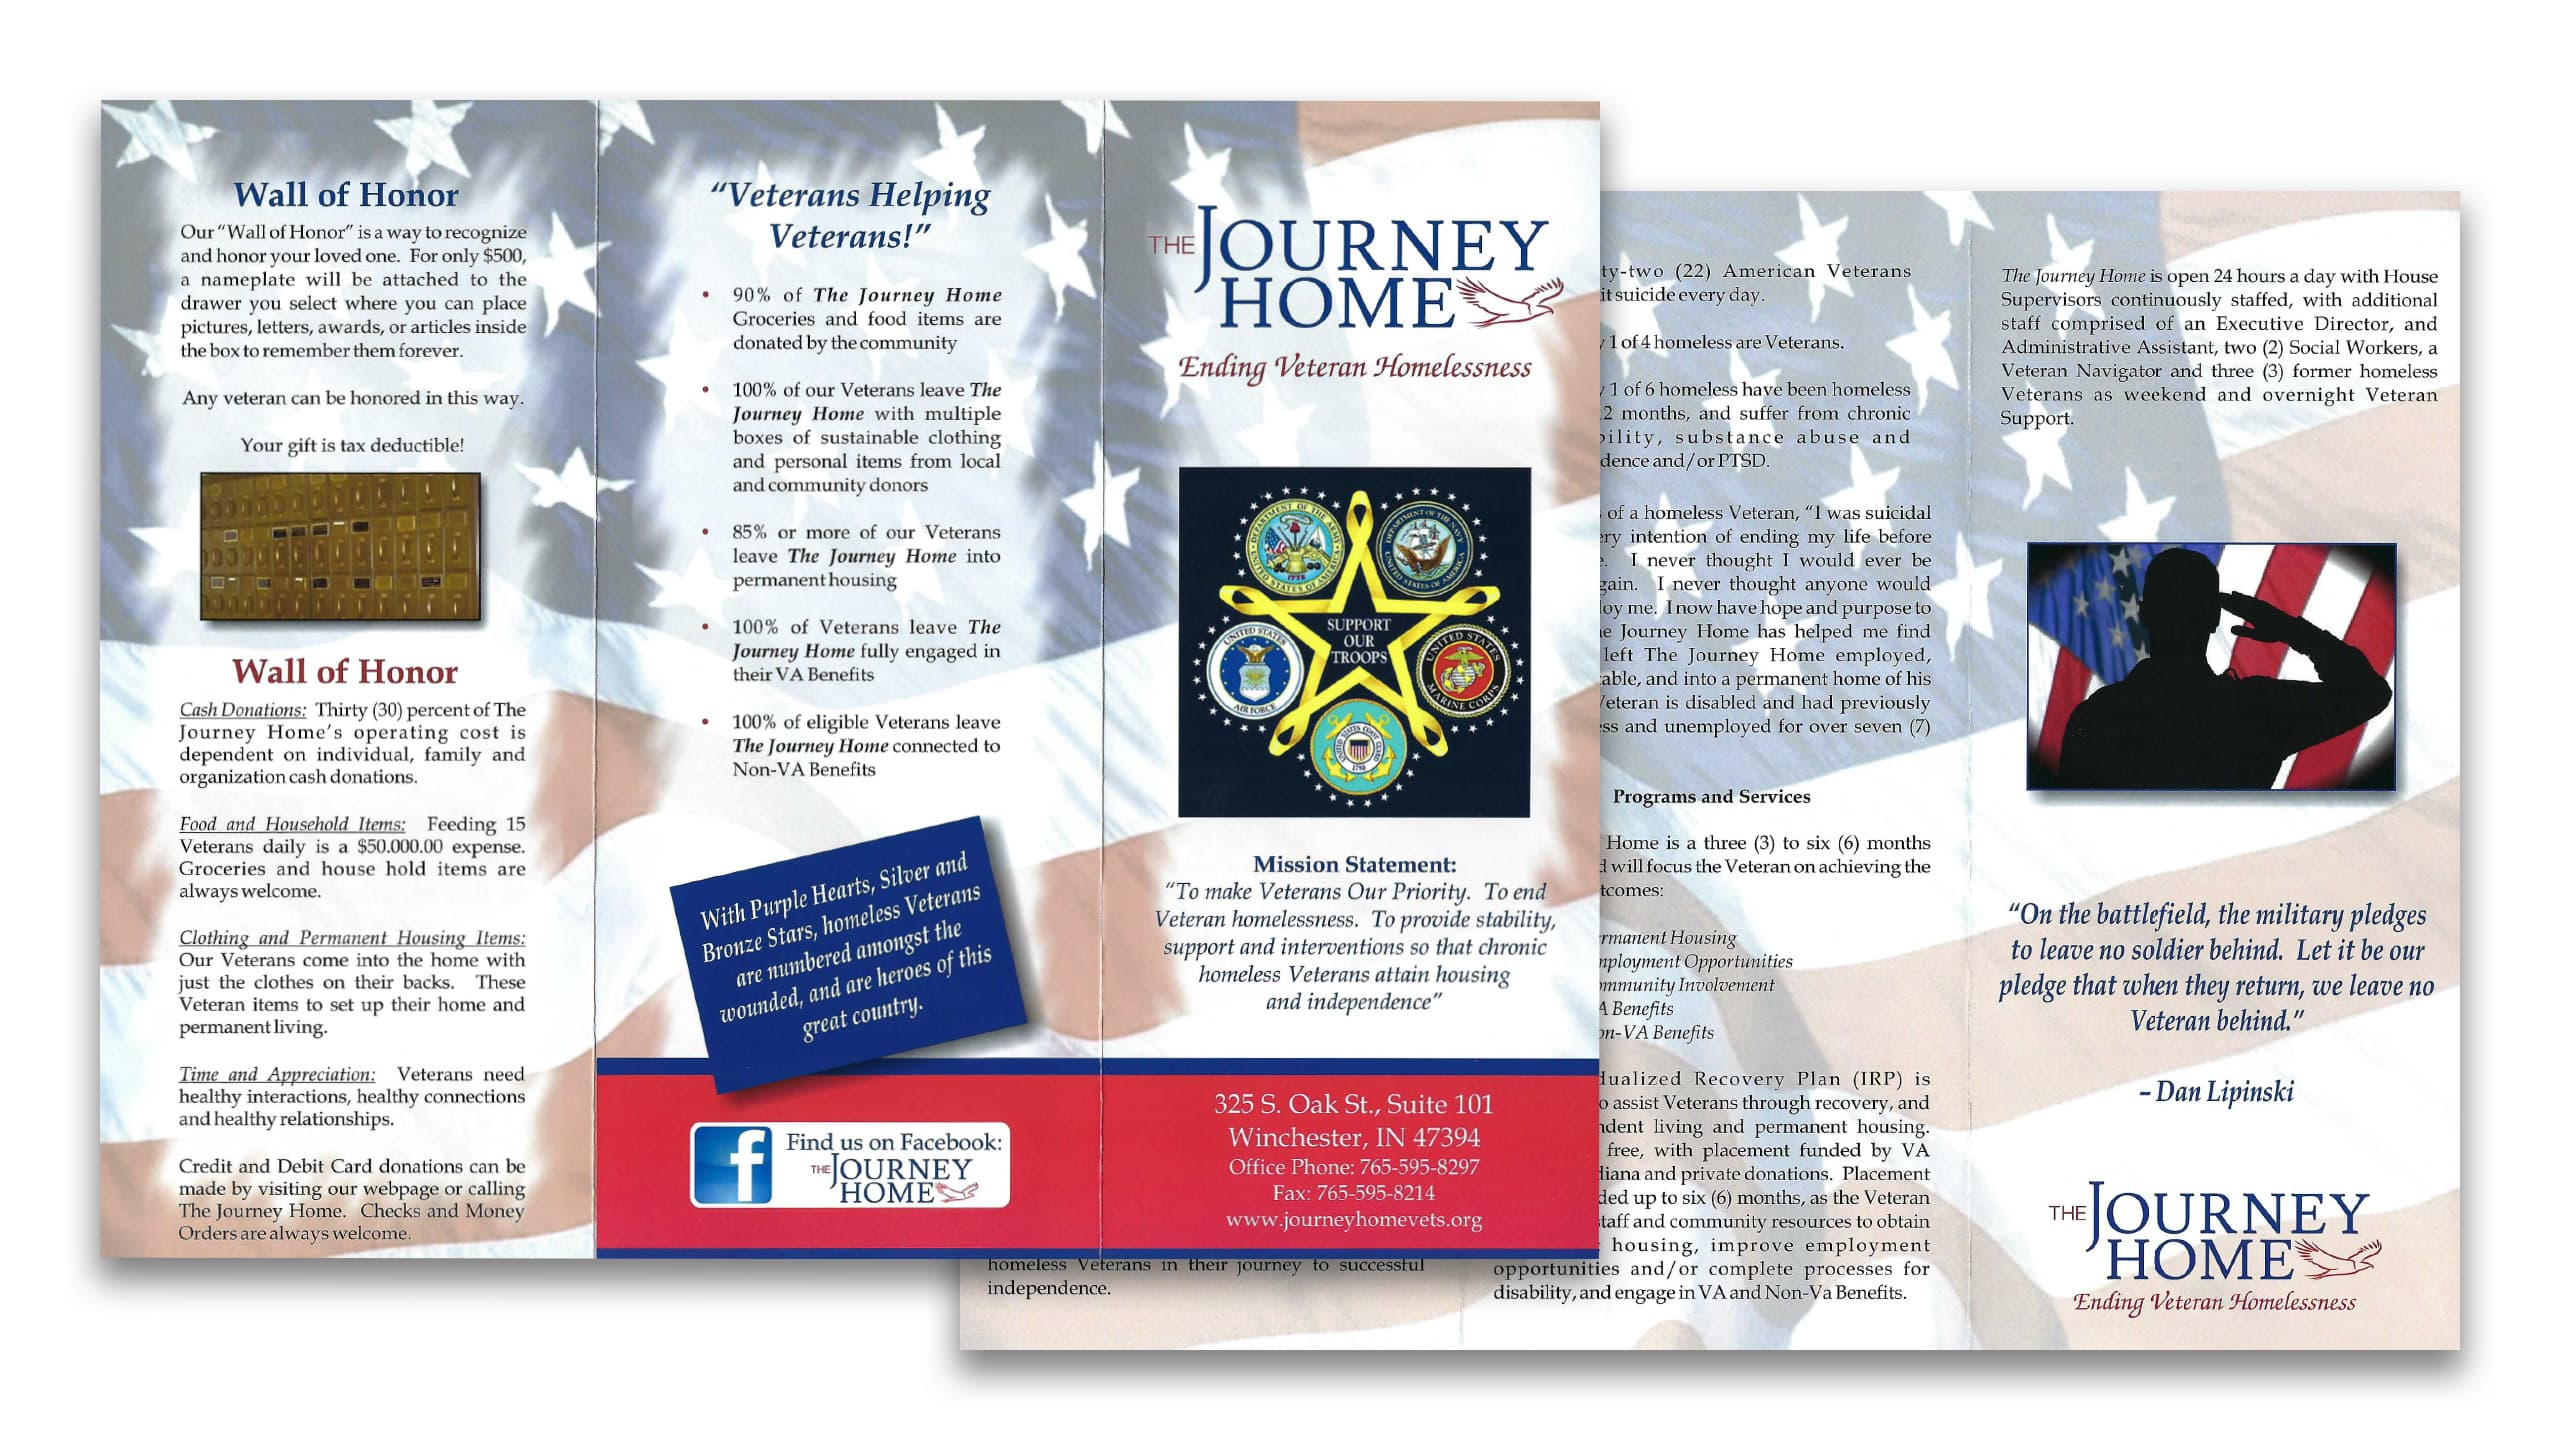 Preview of the front and back of The Journey Home's brochure